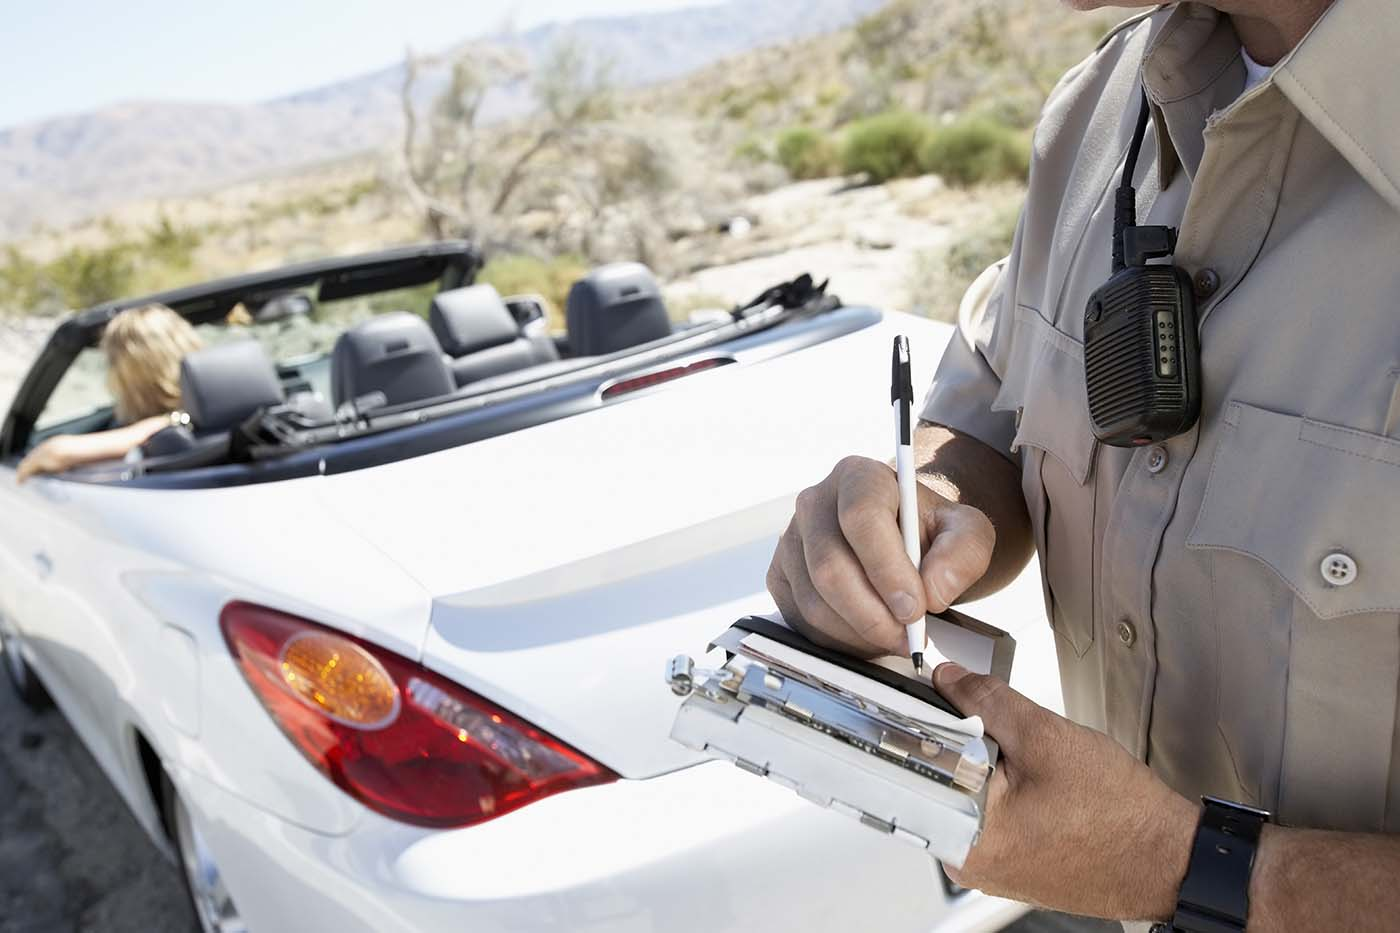 The End of Summer Break - Let the Speeding Tickets Roll